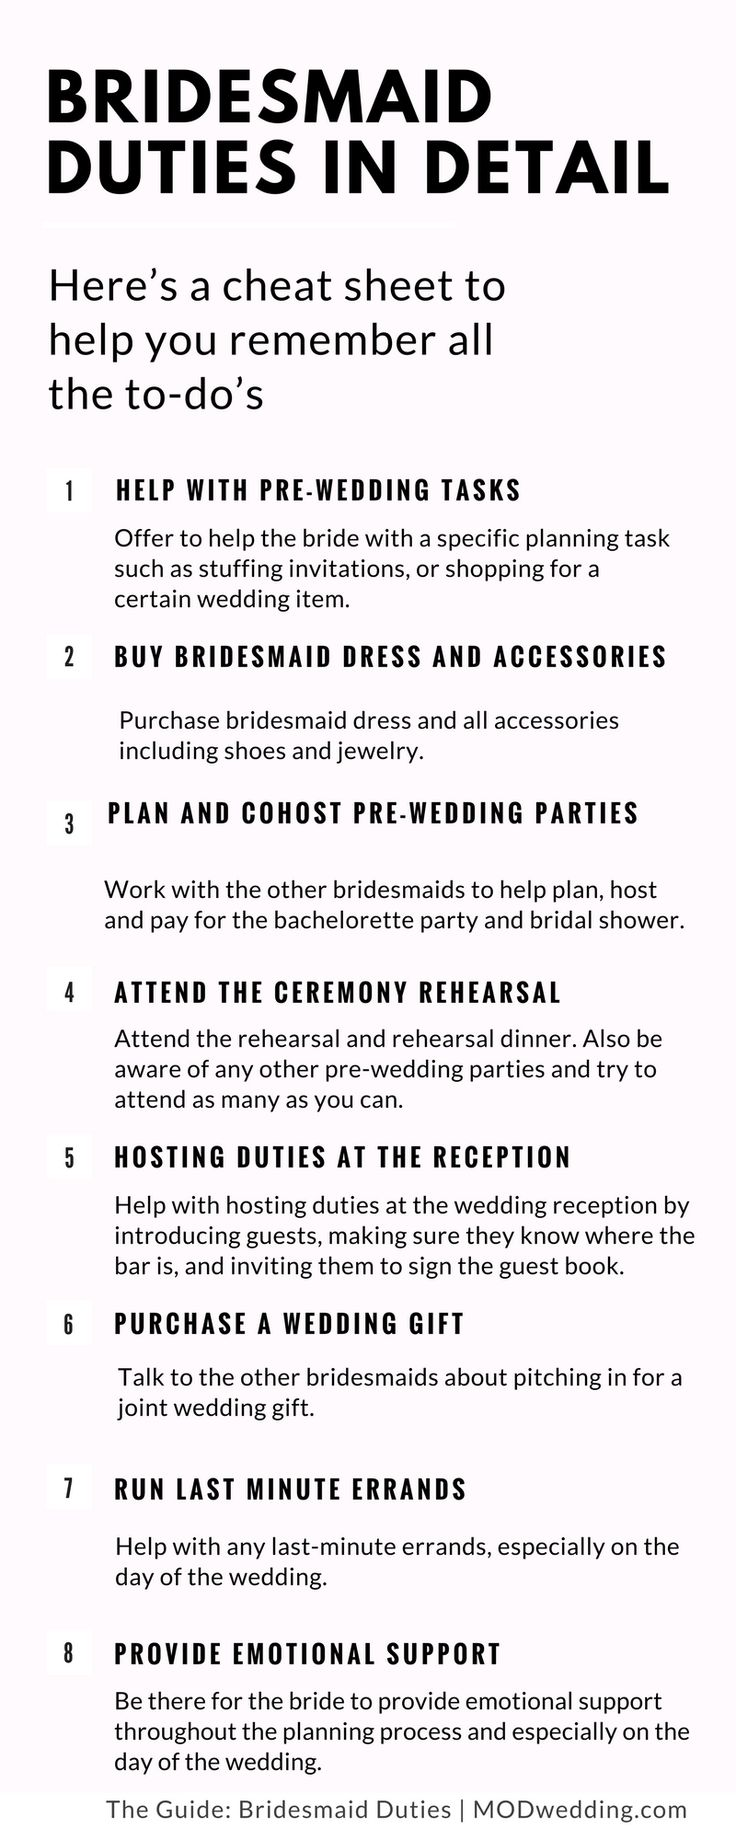 Bridesmaid Duties in Detail, here's a cheat sheet of your to-dos, click to read more in details